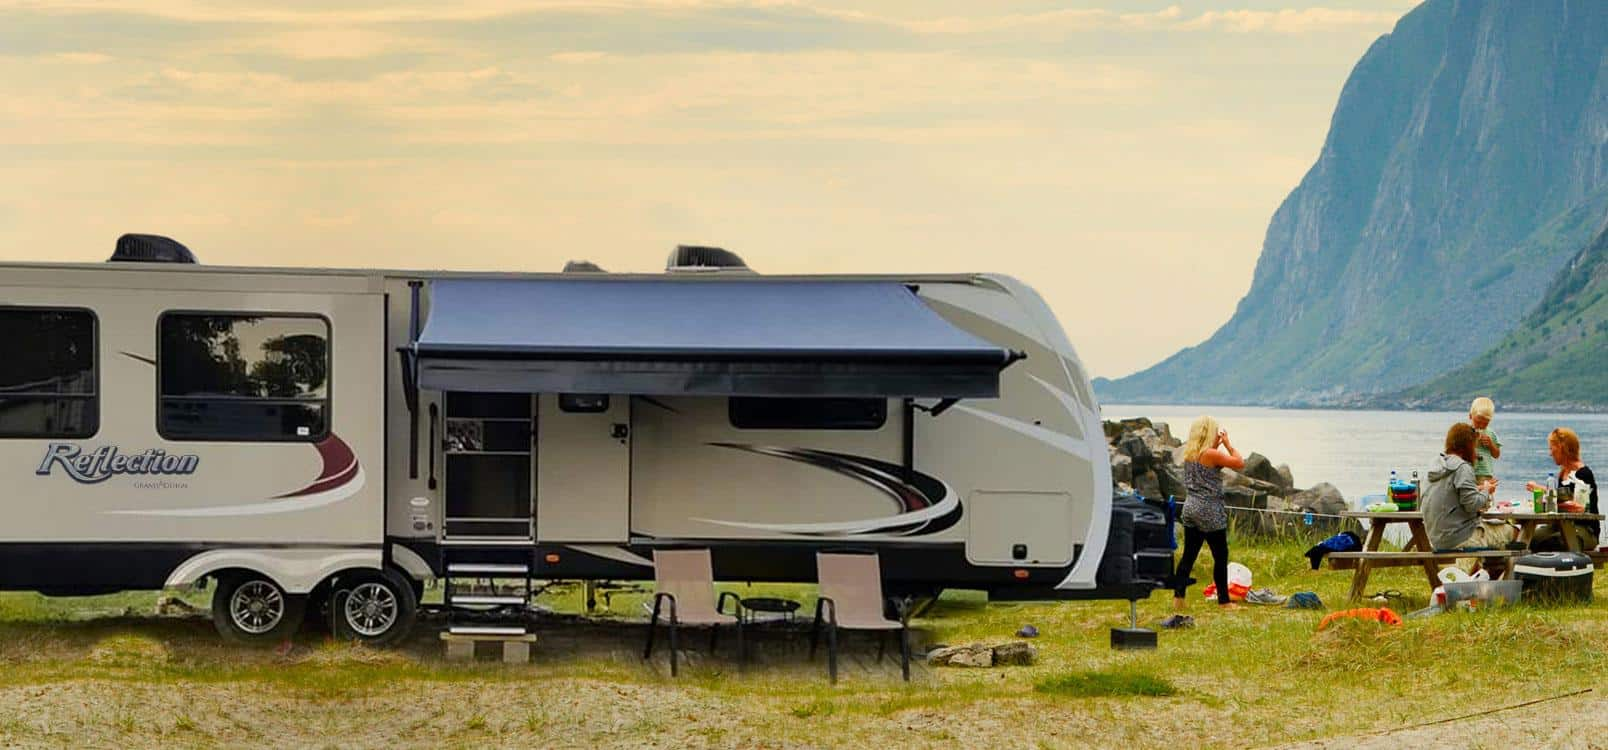 The Best Built Travel Trailers In